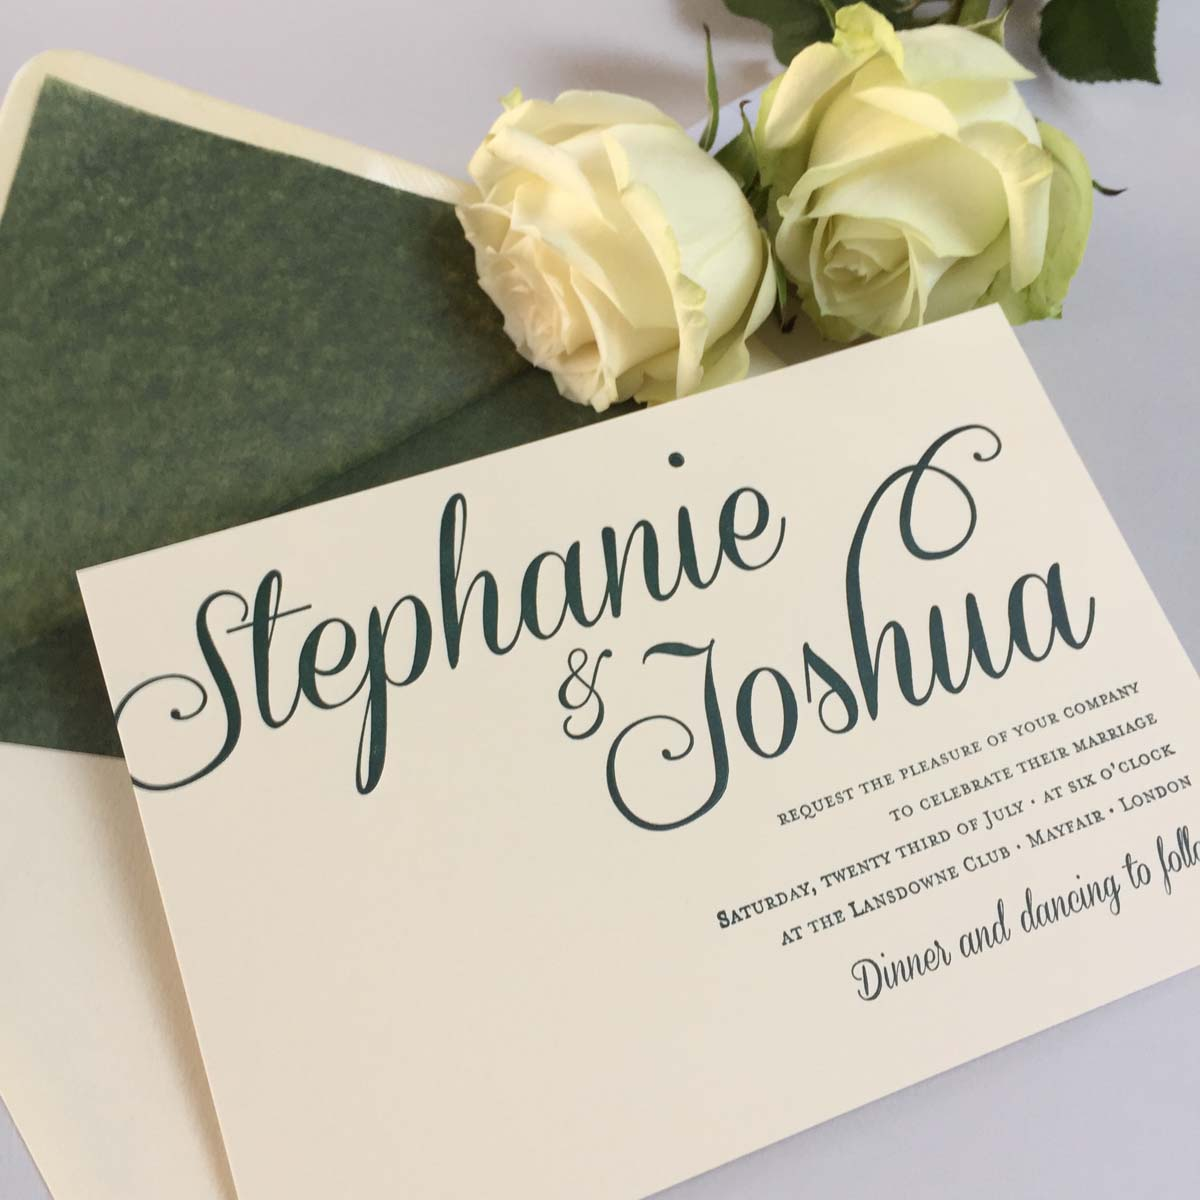 Stephanie green wedding invitations